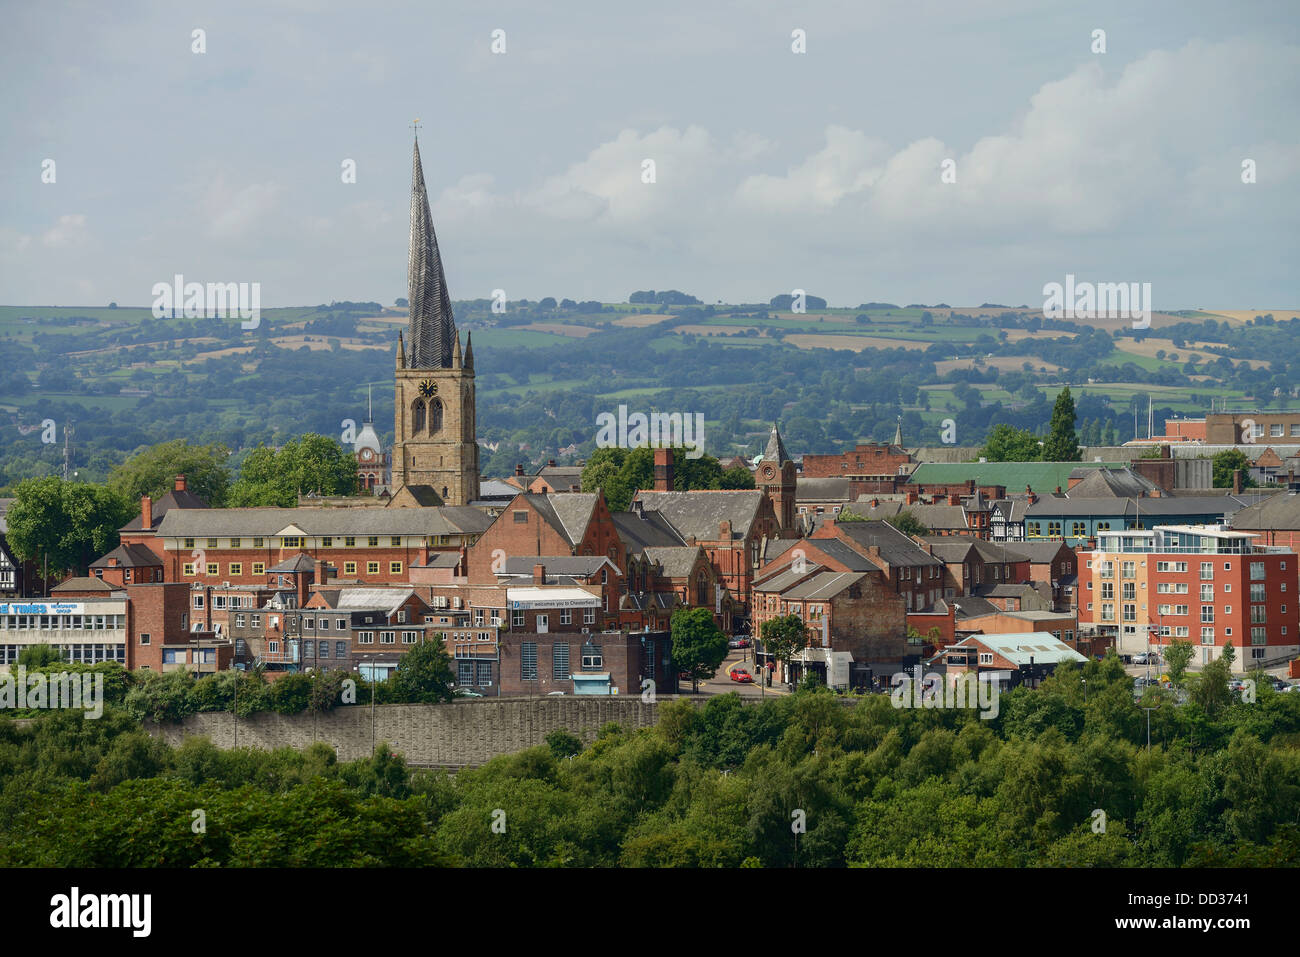 Chesterfield town centre and the church with the crooked spire UK - Stock Image